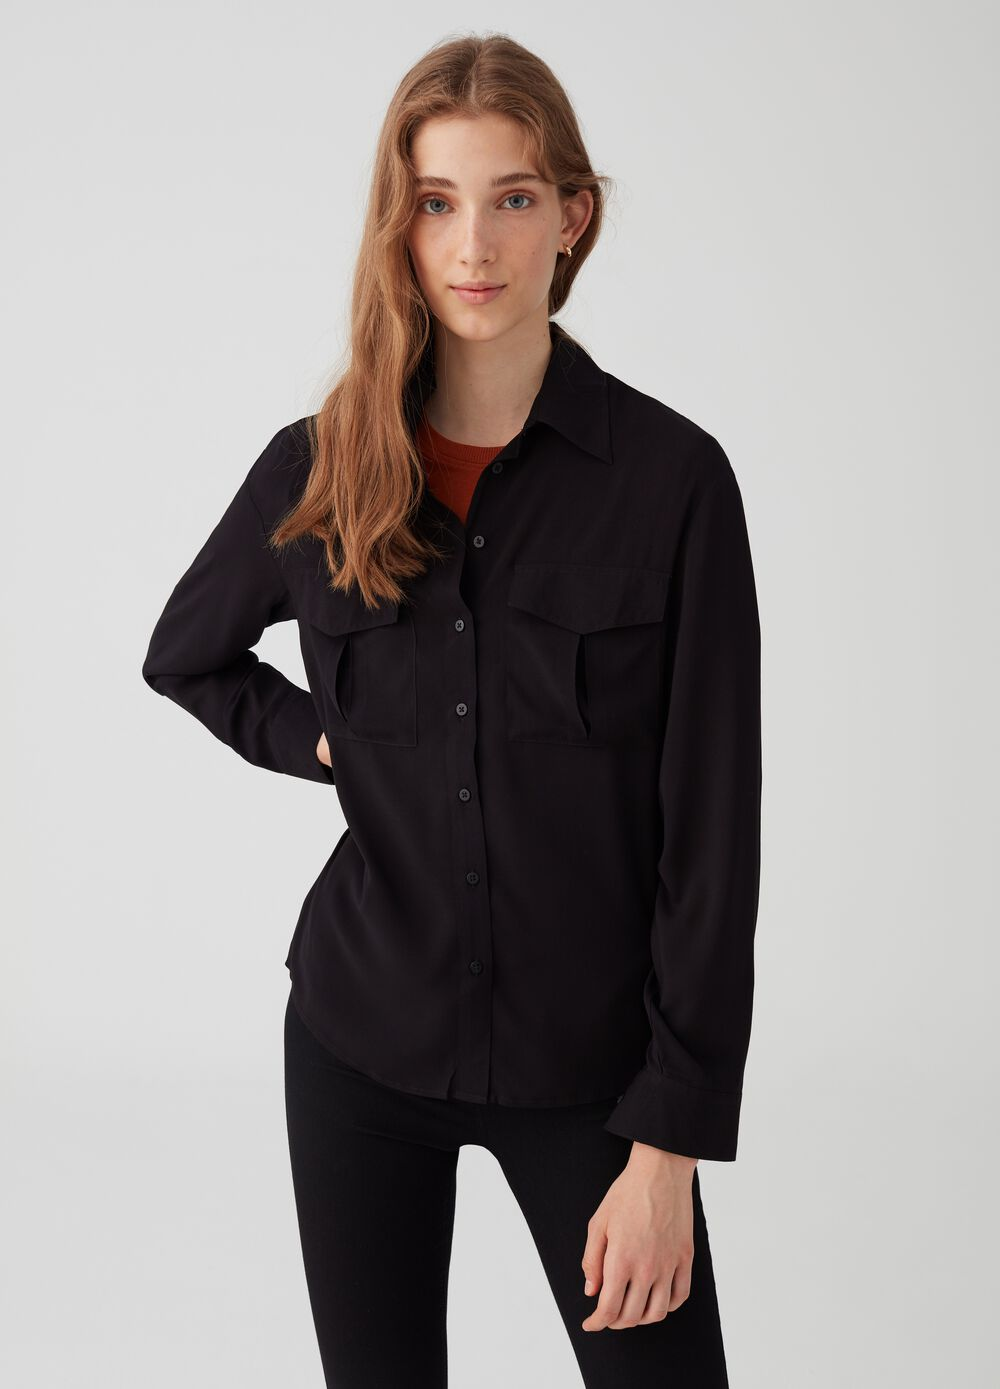 100% viscose shirt with pockets with flap